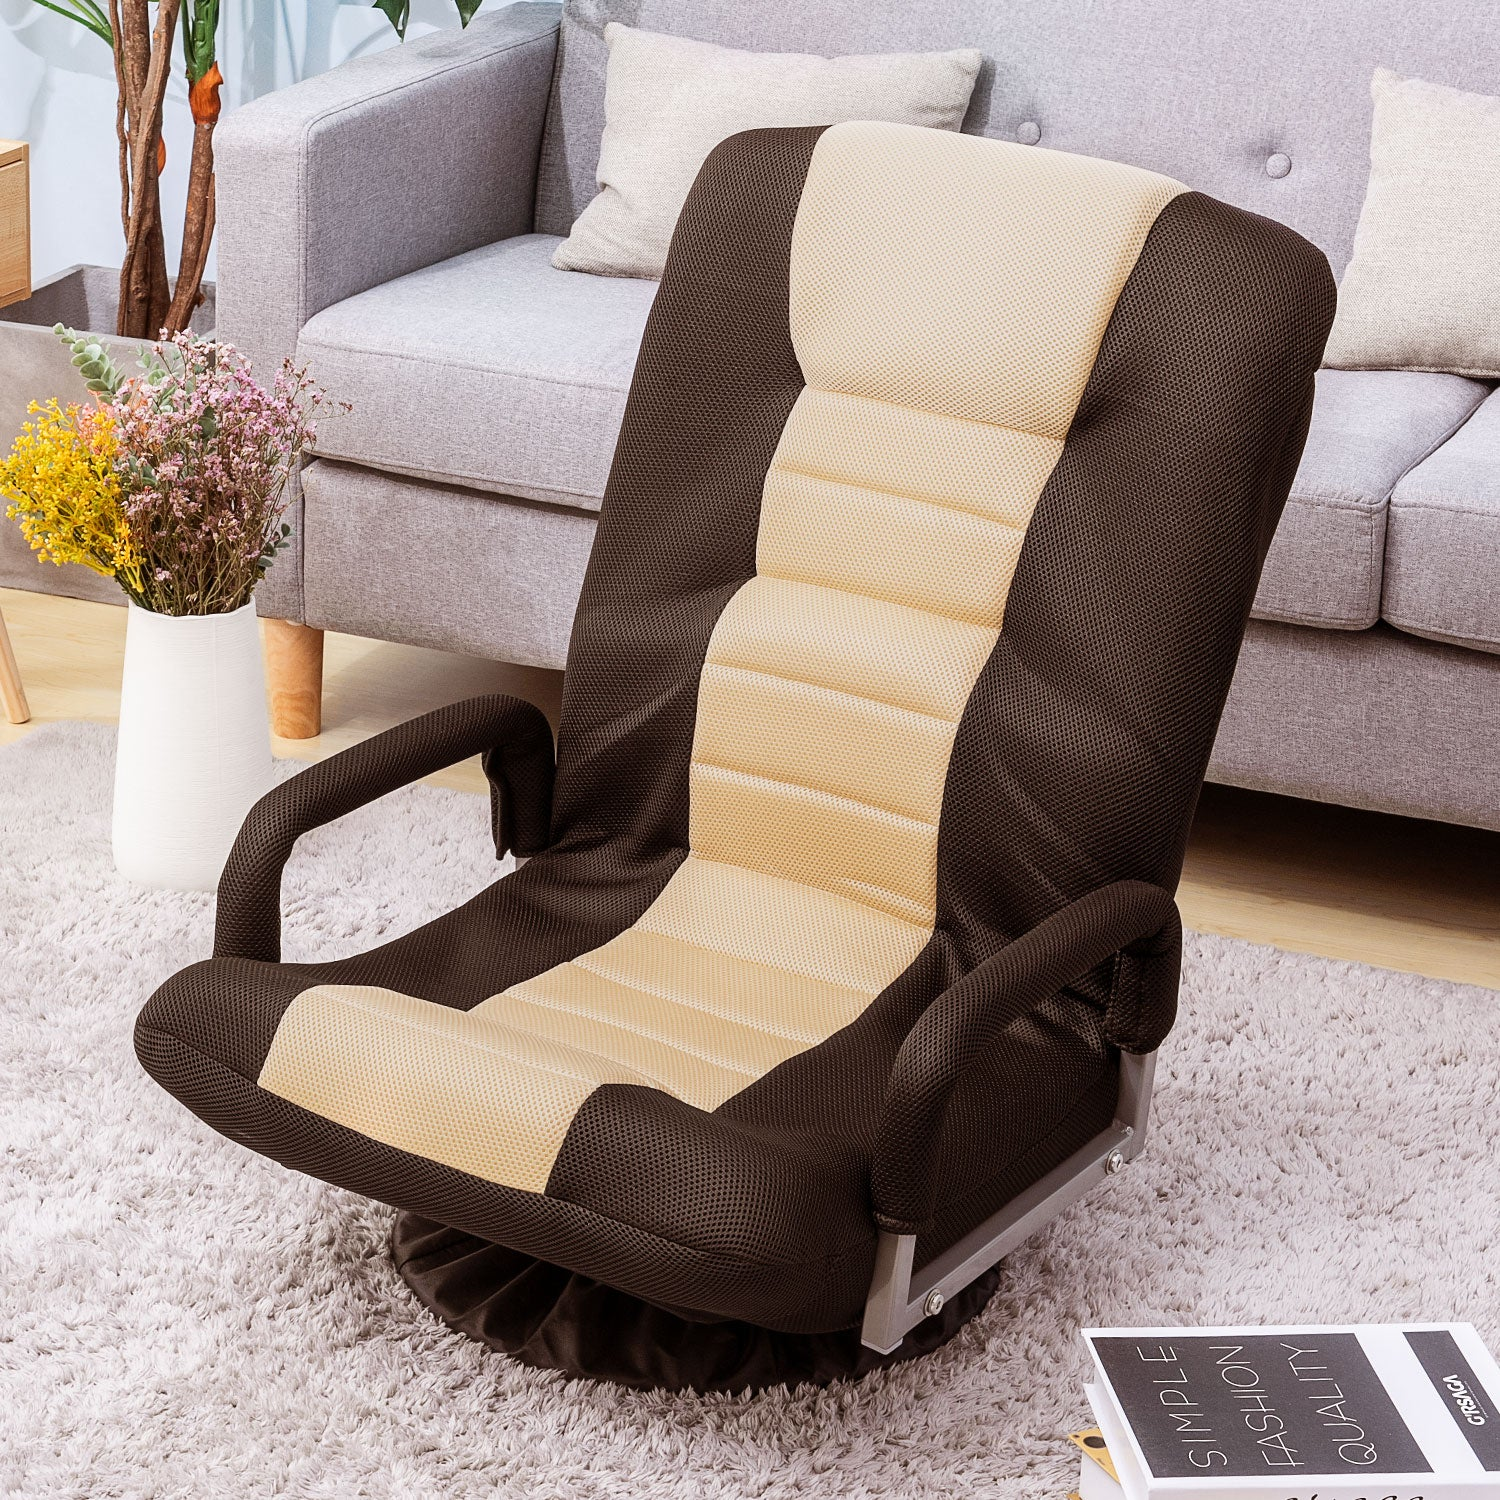 Swivel Video Rocker Gaming Chair Adjustable 7-Position Floor Chair Folding Sofa Lounger BH037464